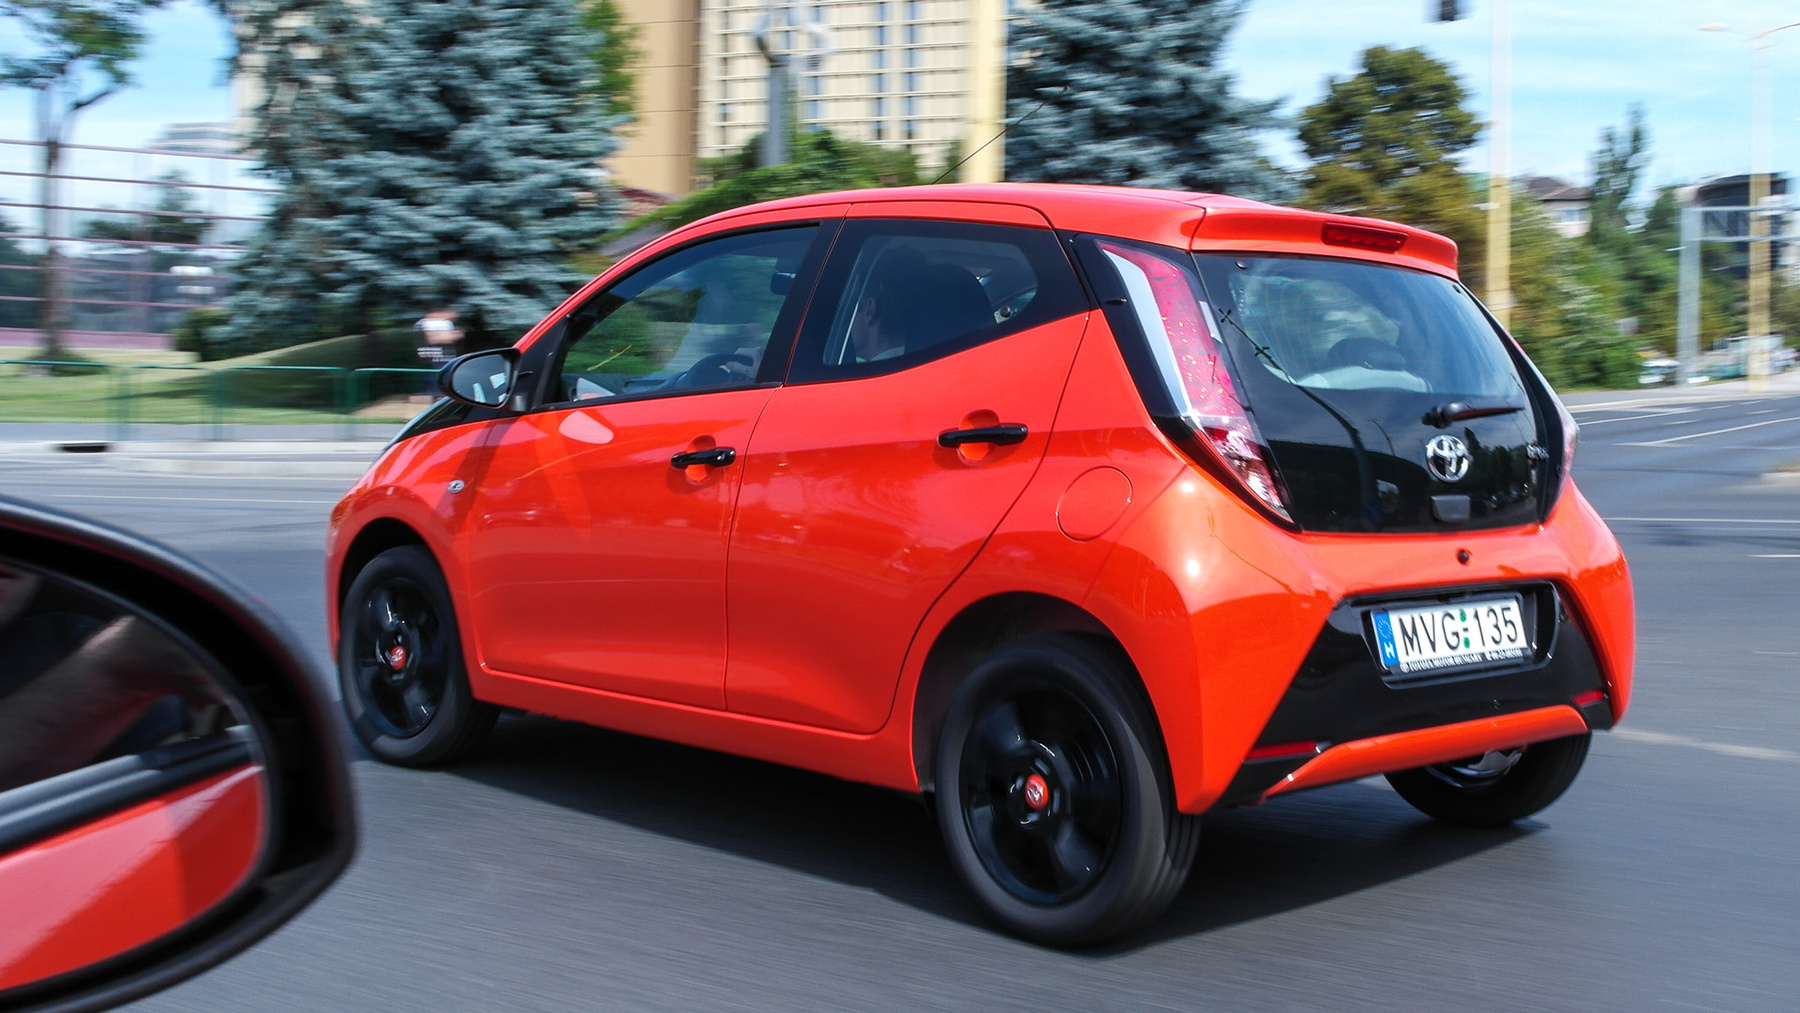 Toyota Aygo Car Picture